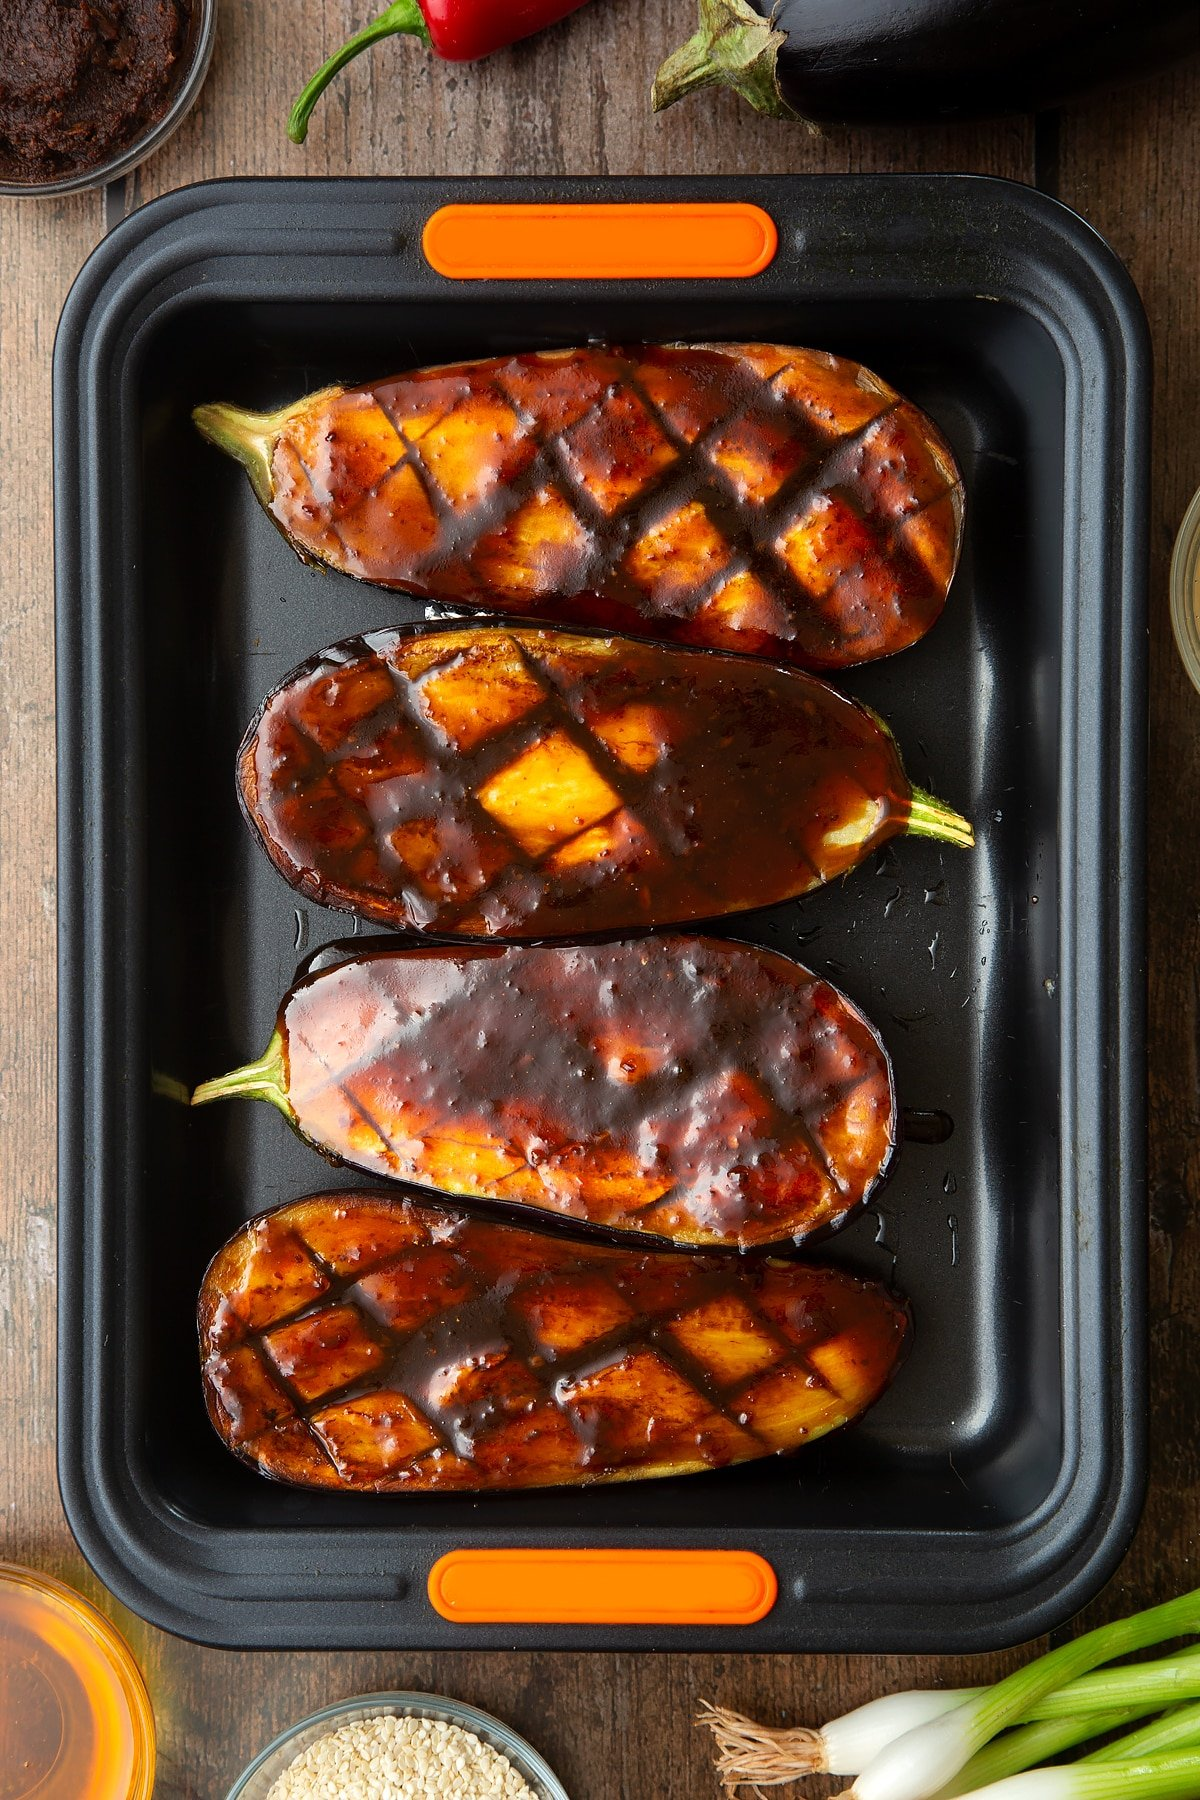 Scored and fried aubergine halves in a tray and covered with a miso glaze. Ingredients to make miso aubergine surround the tray.